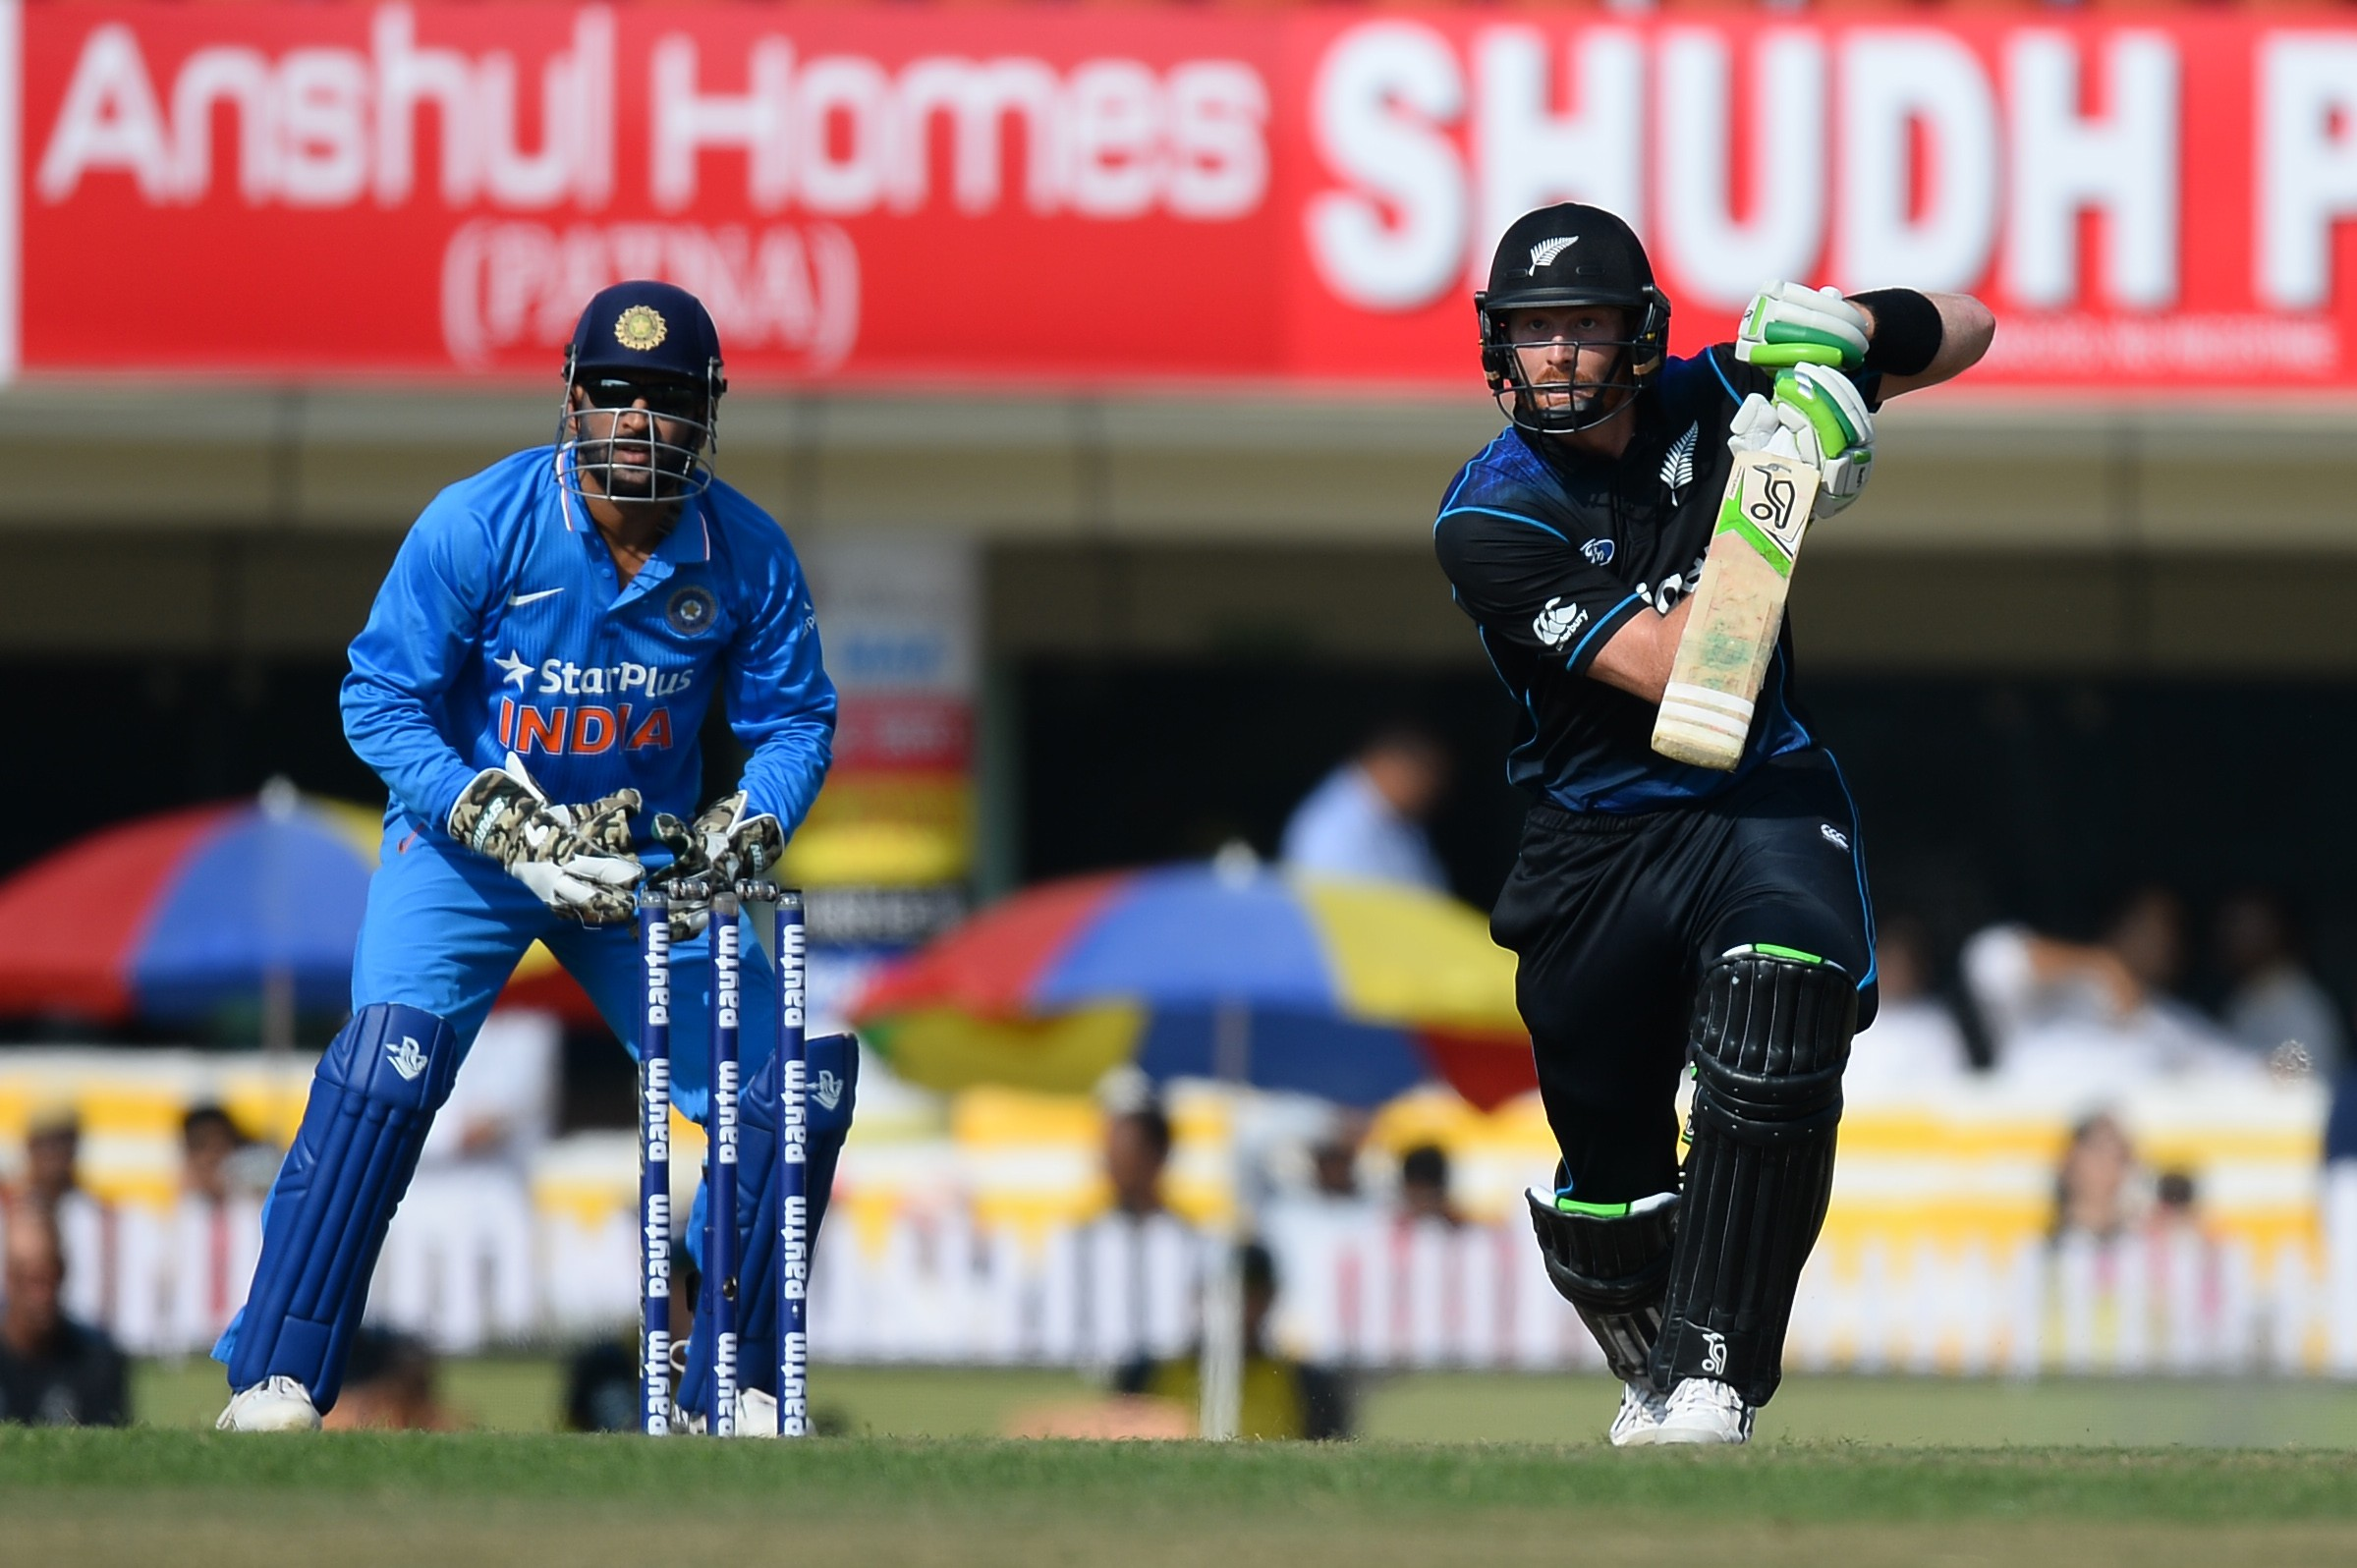 New Zealand gave India a scare in the ODI series (Image credit: AFP)